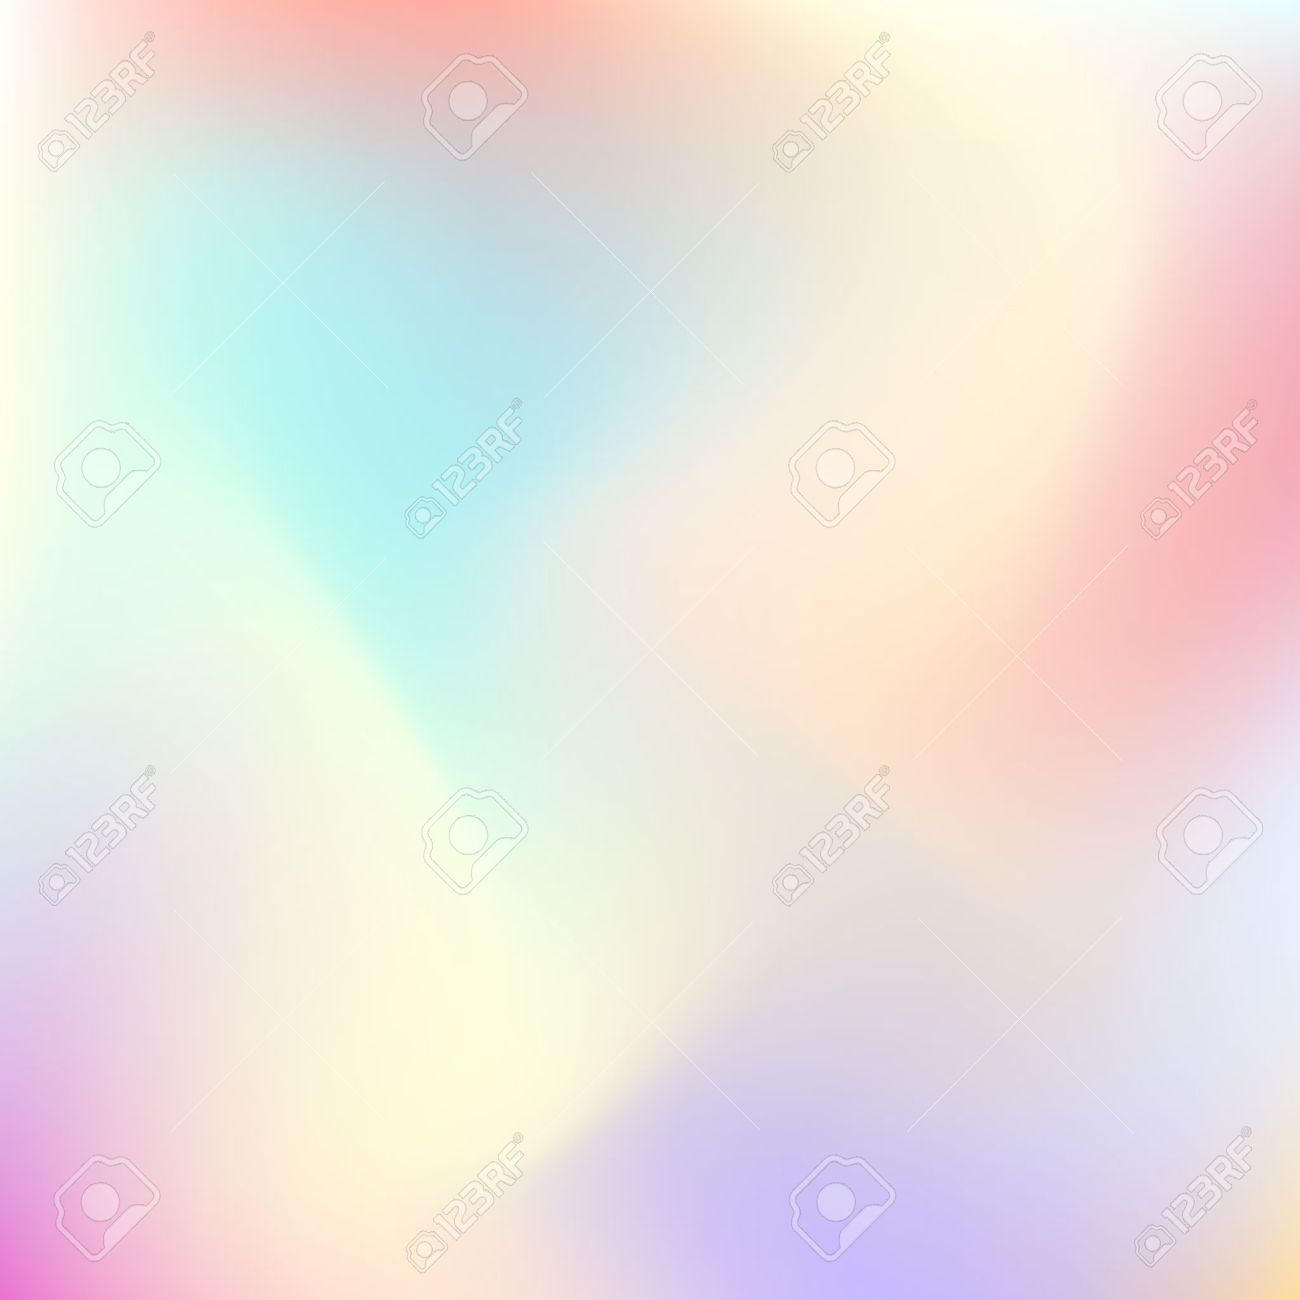 abstract trend gradient pastel color blur background for design